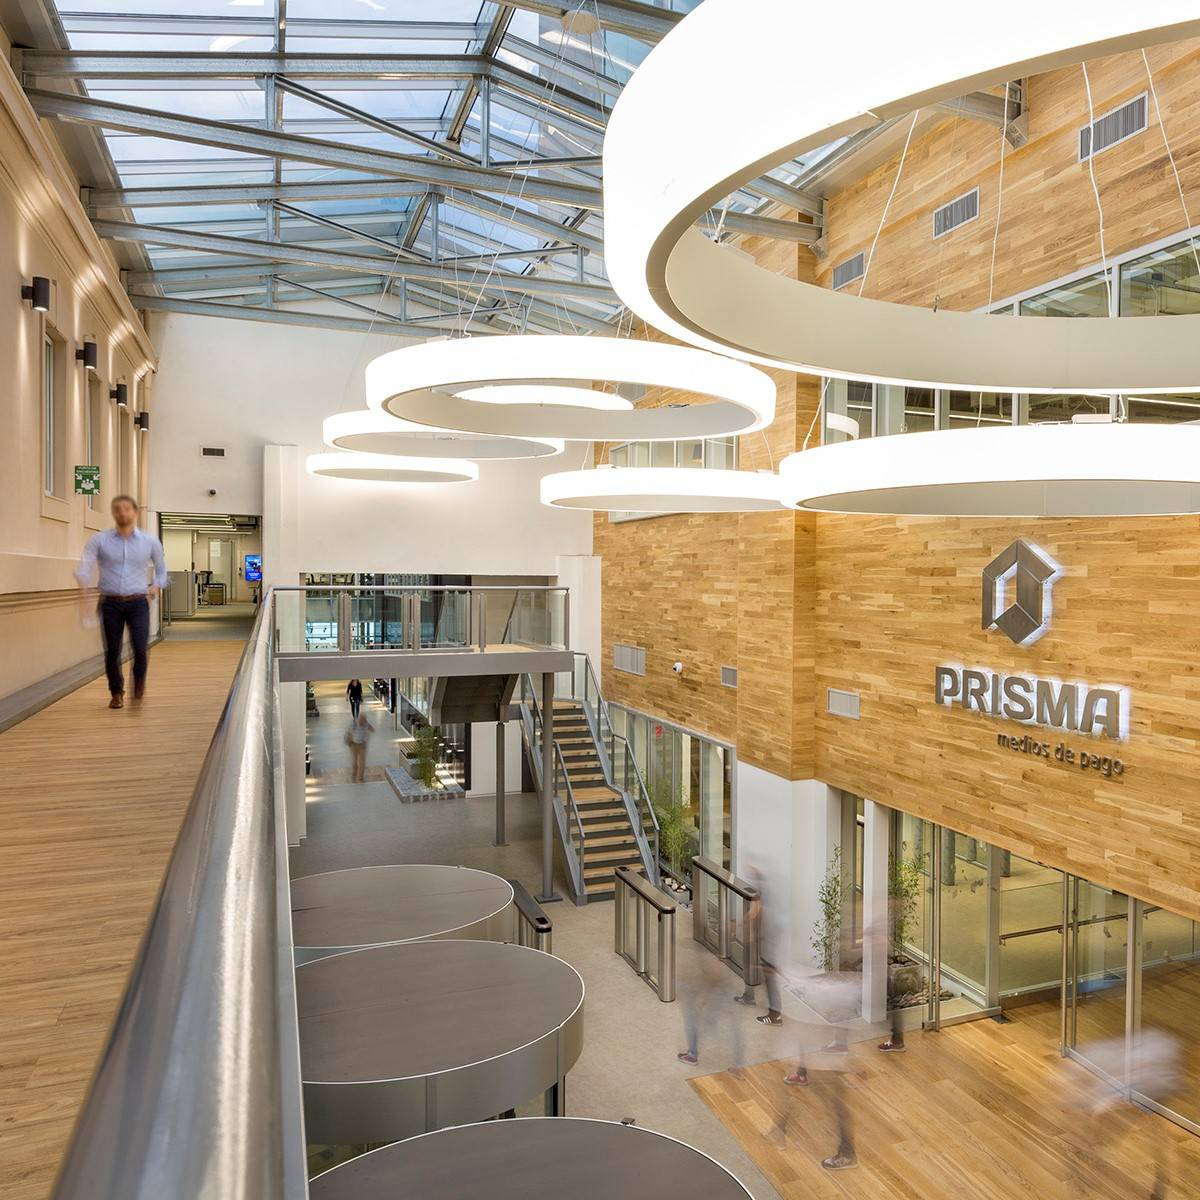 South American firm to join global workplace design and fit-out network